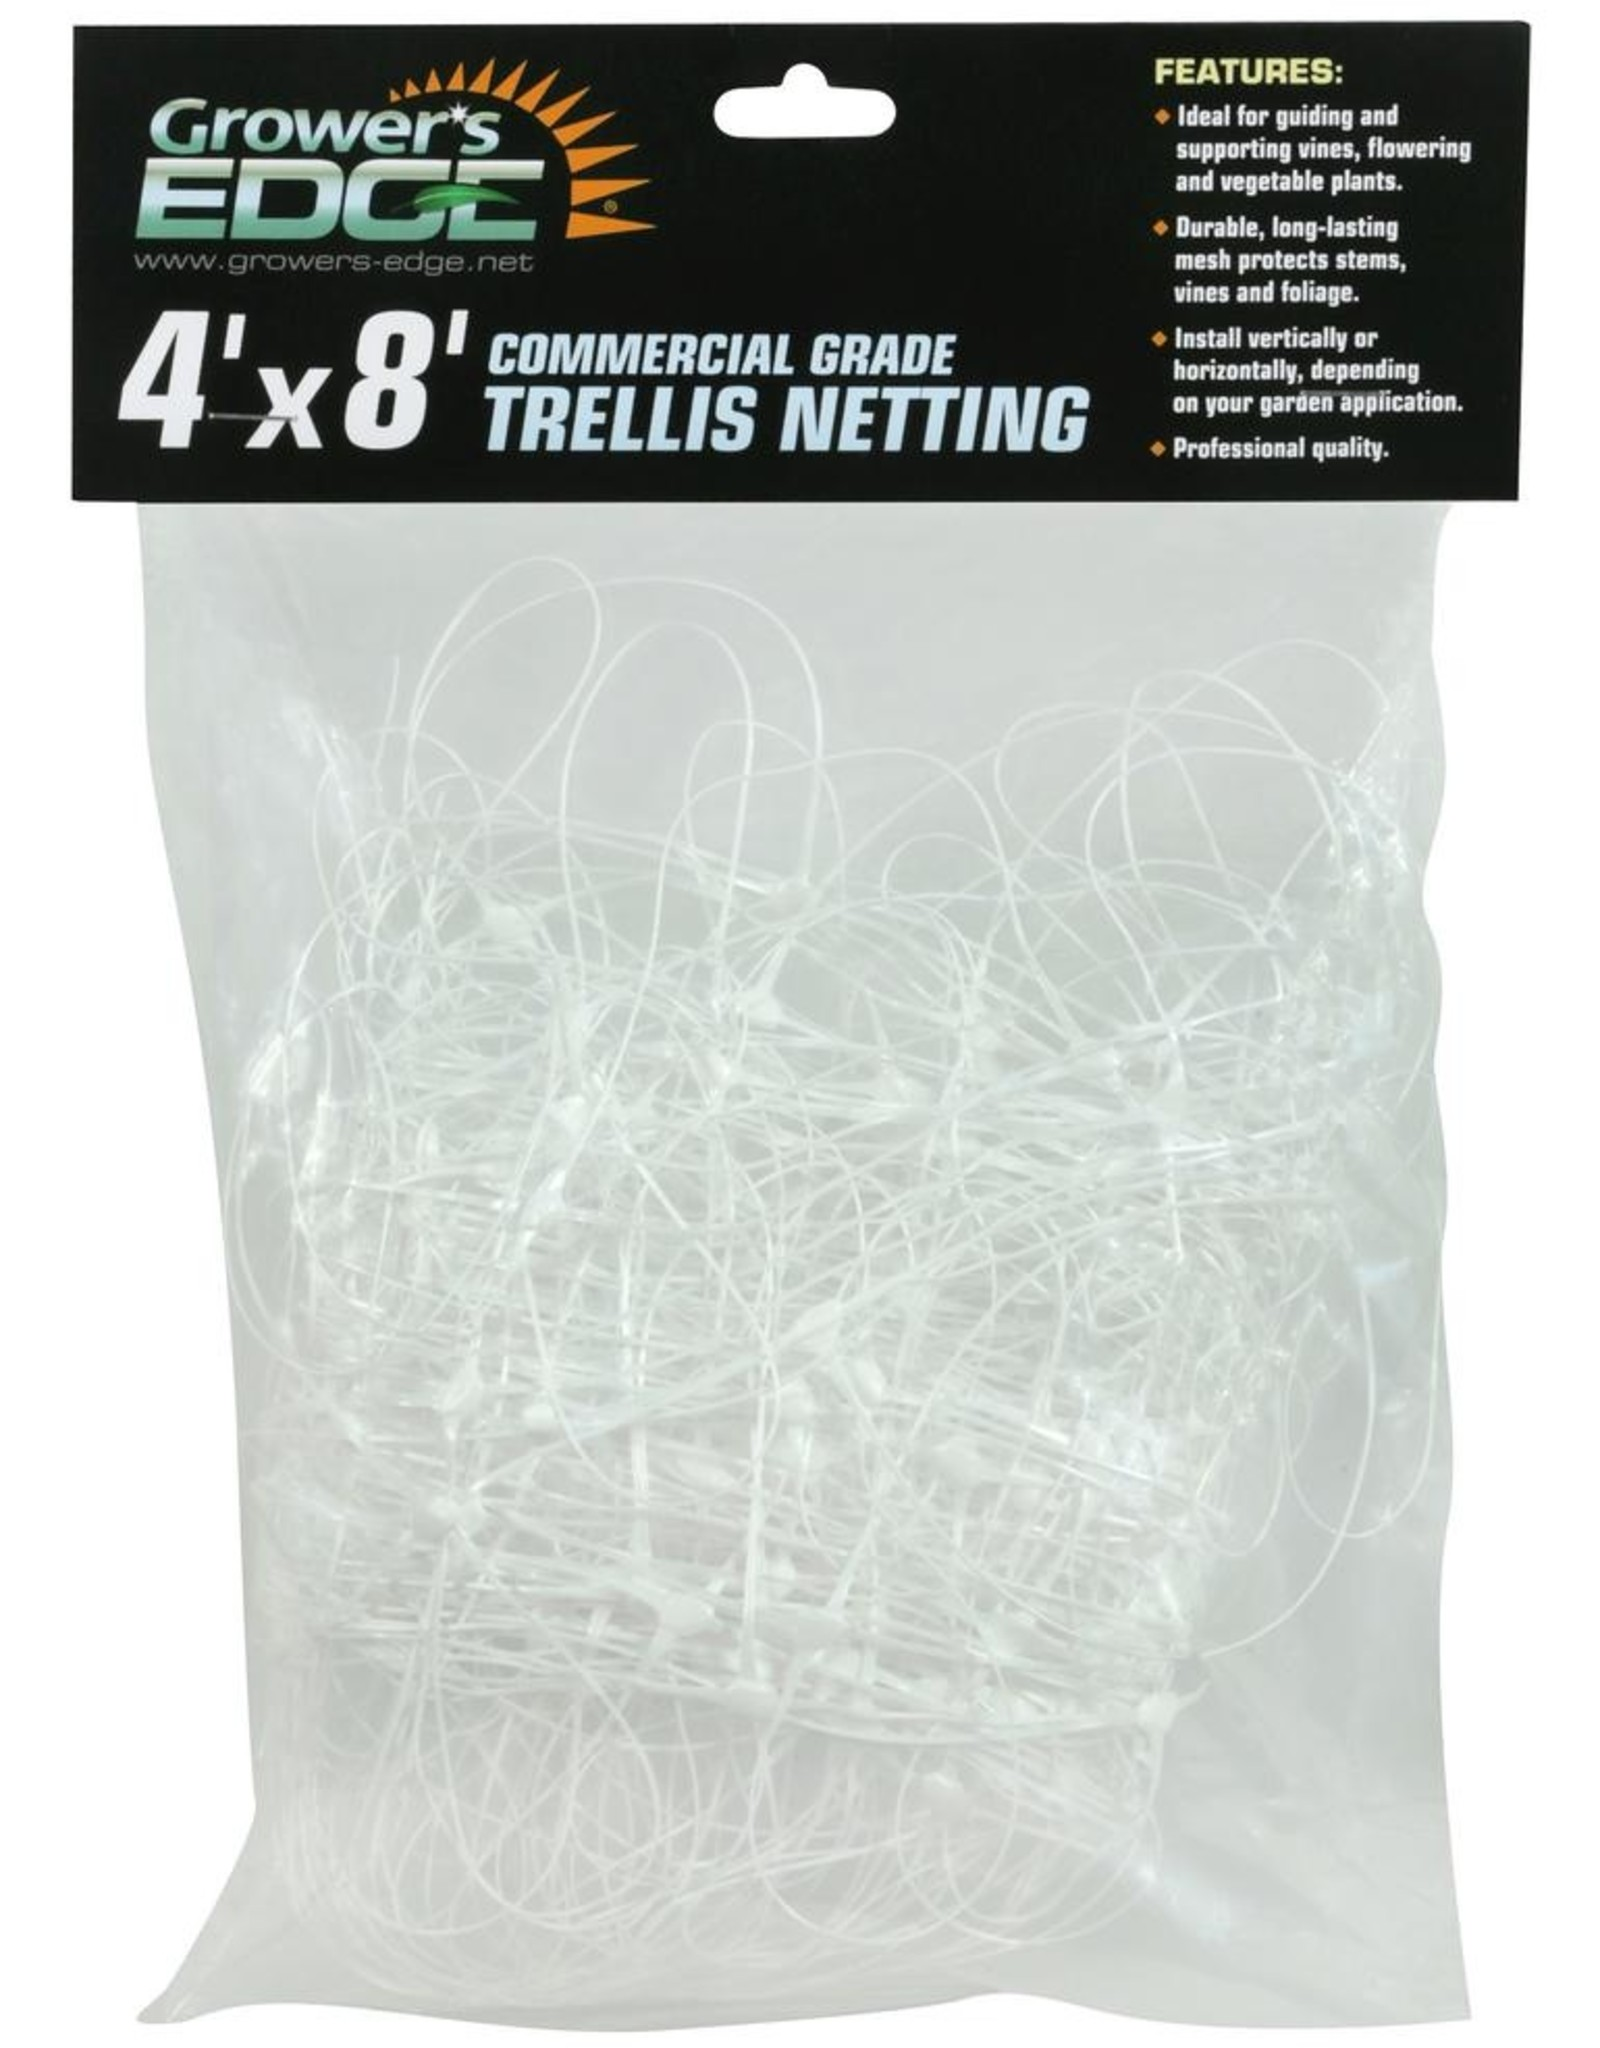 GROWERS EDGE Grower's Edge® Commercial Grade Trellis Netting is a strong, versatile polypropylene mesh specially designed for more efficient and economical cultivation of vegetables, fruits and flowers. Due to its durability and practical nature, Grower's Edge® Commer